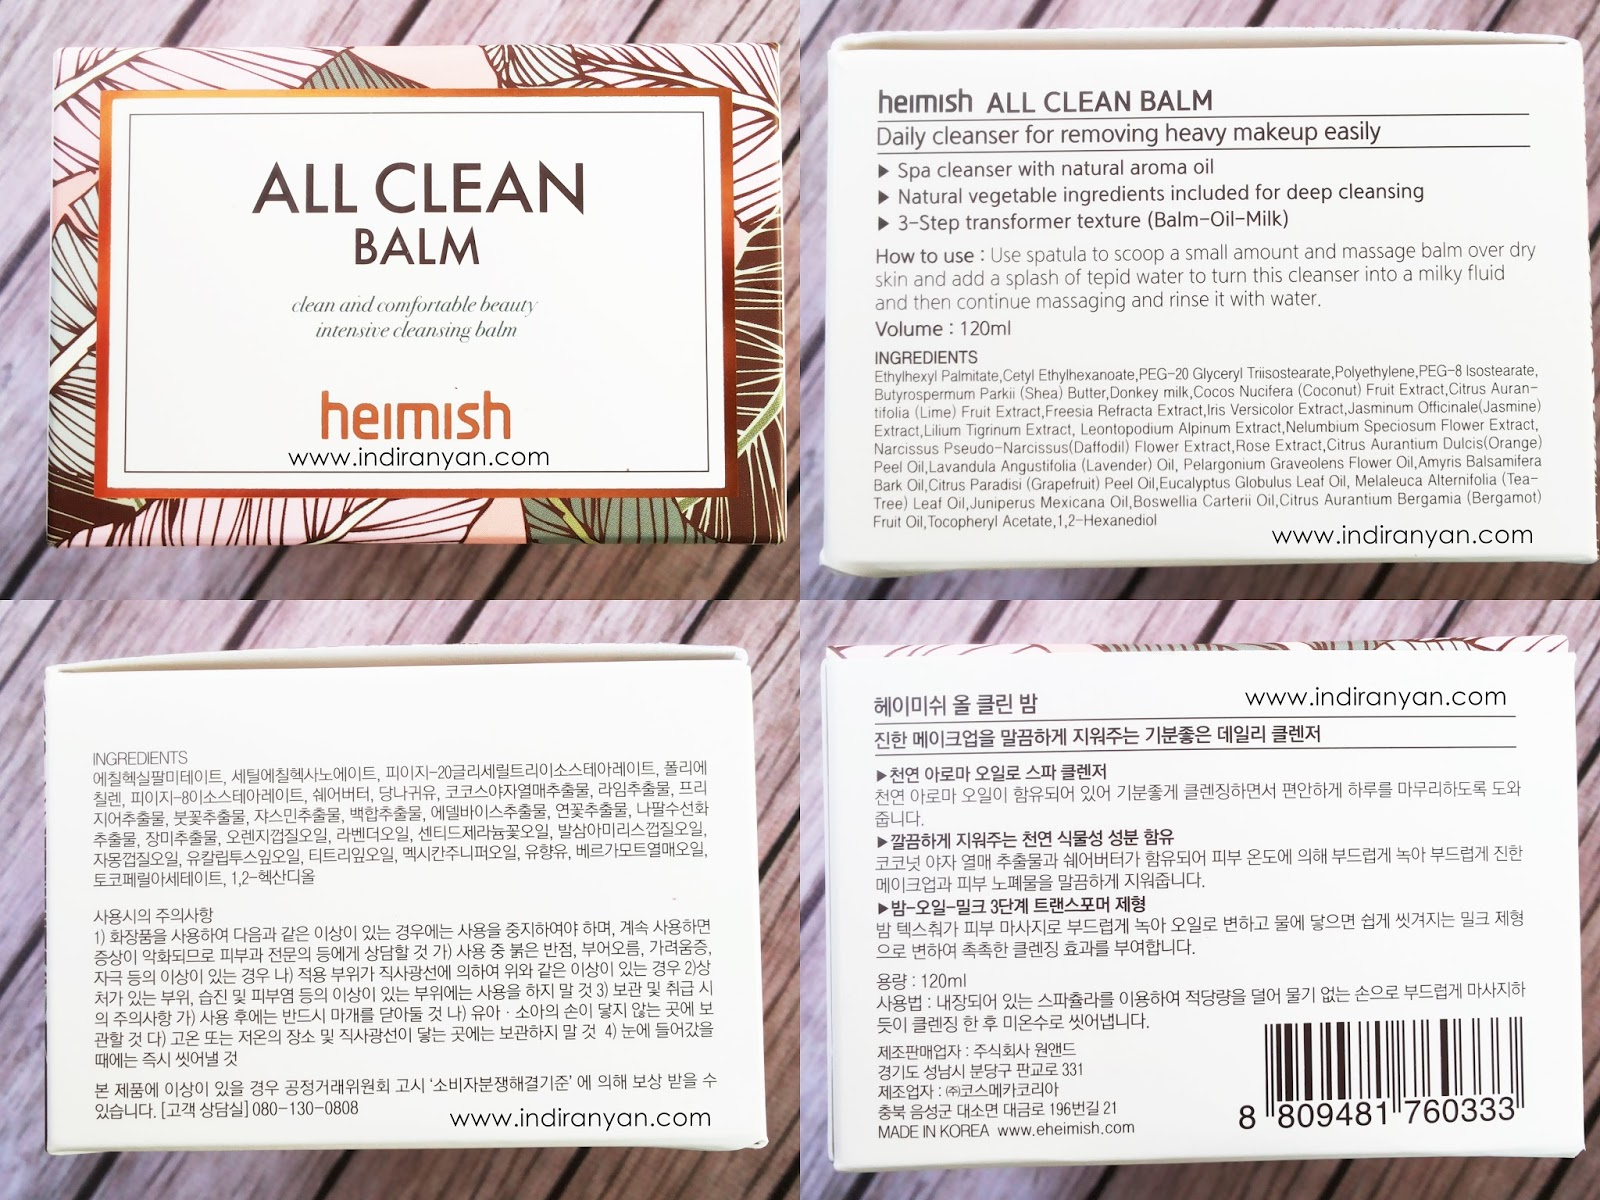 heimish-all-clean-balm-packaging